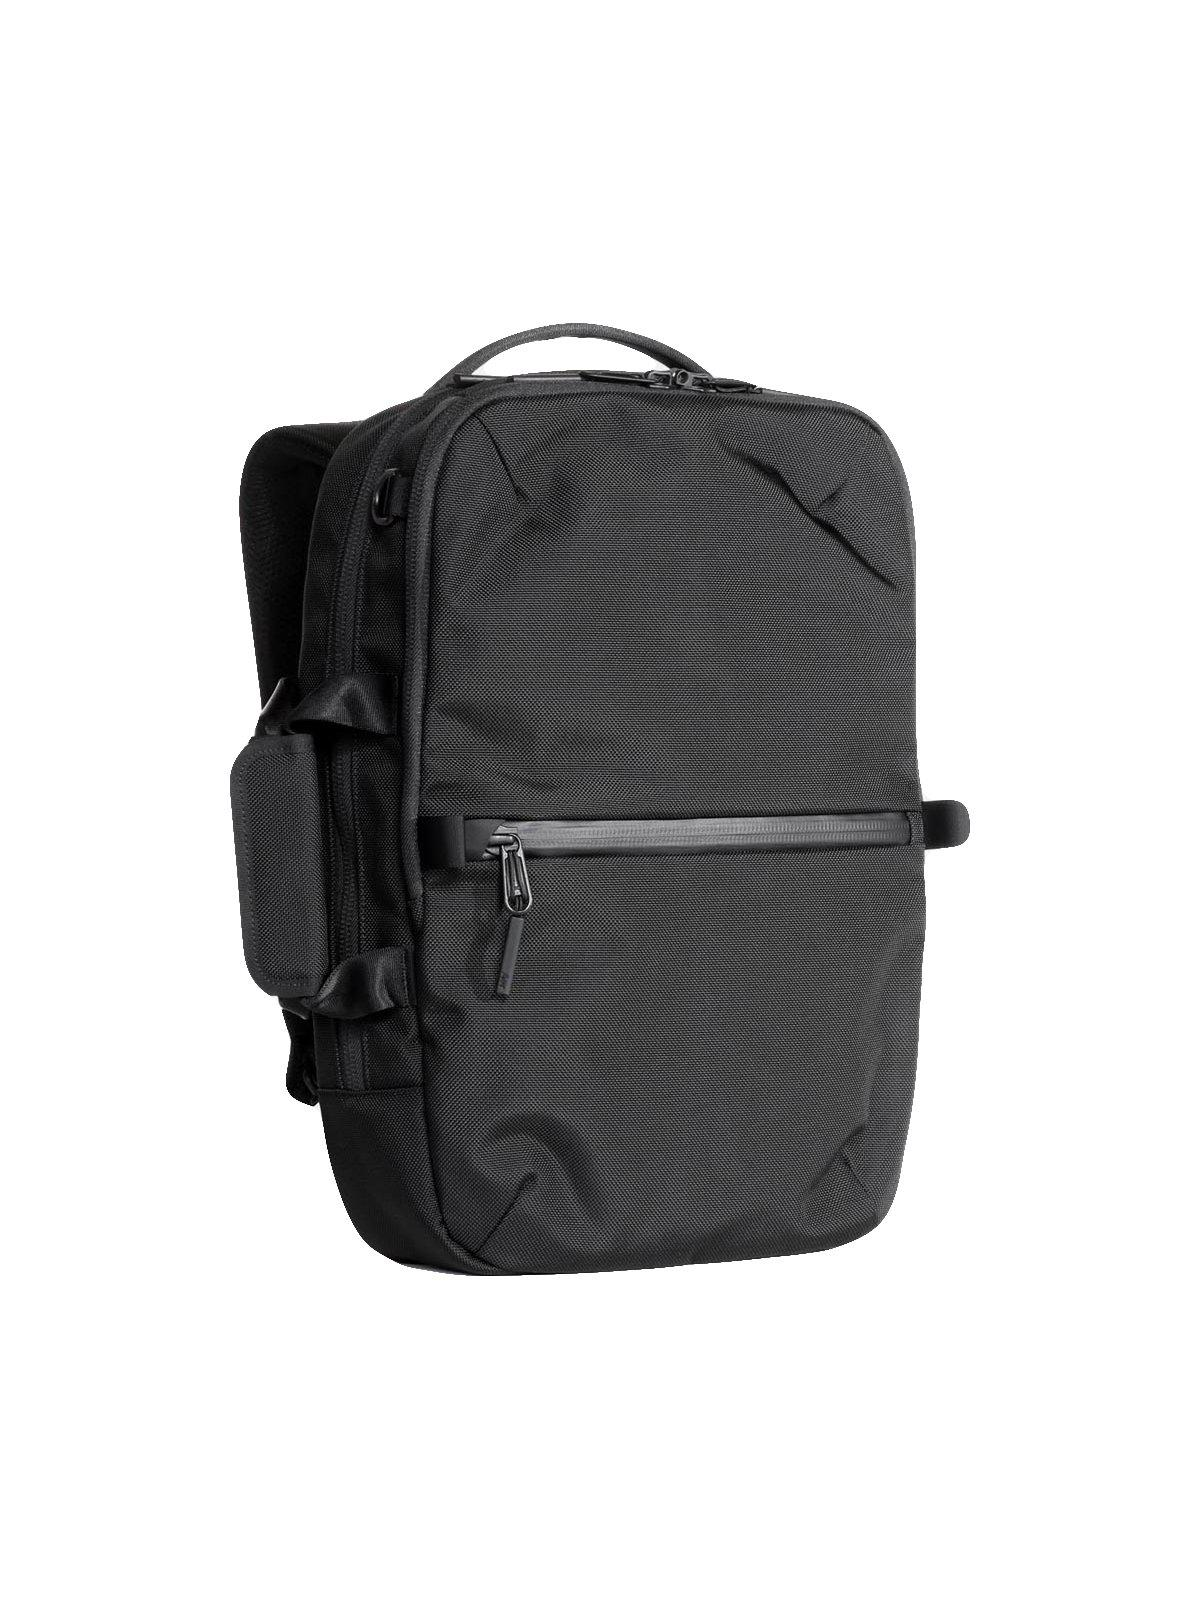 AER Flight Pack 2 Black - MORE by Morello Indonesia